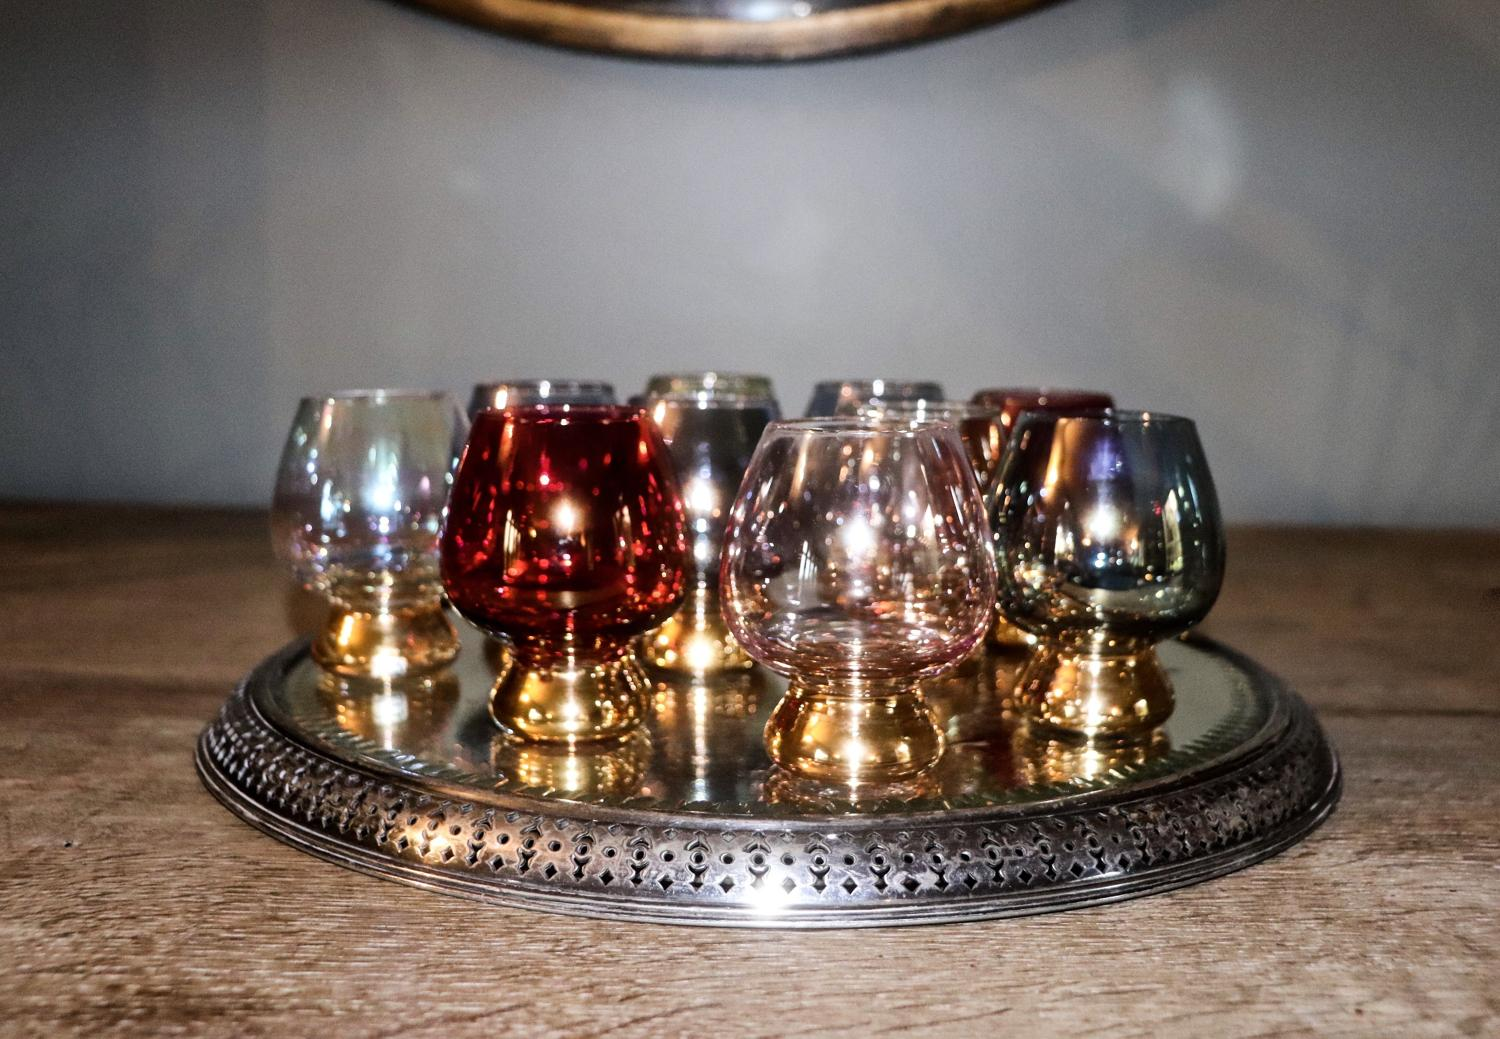 Ten vintage iridescent brandy glasses